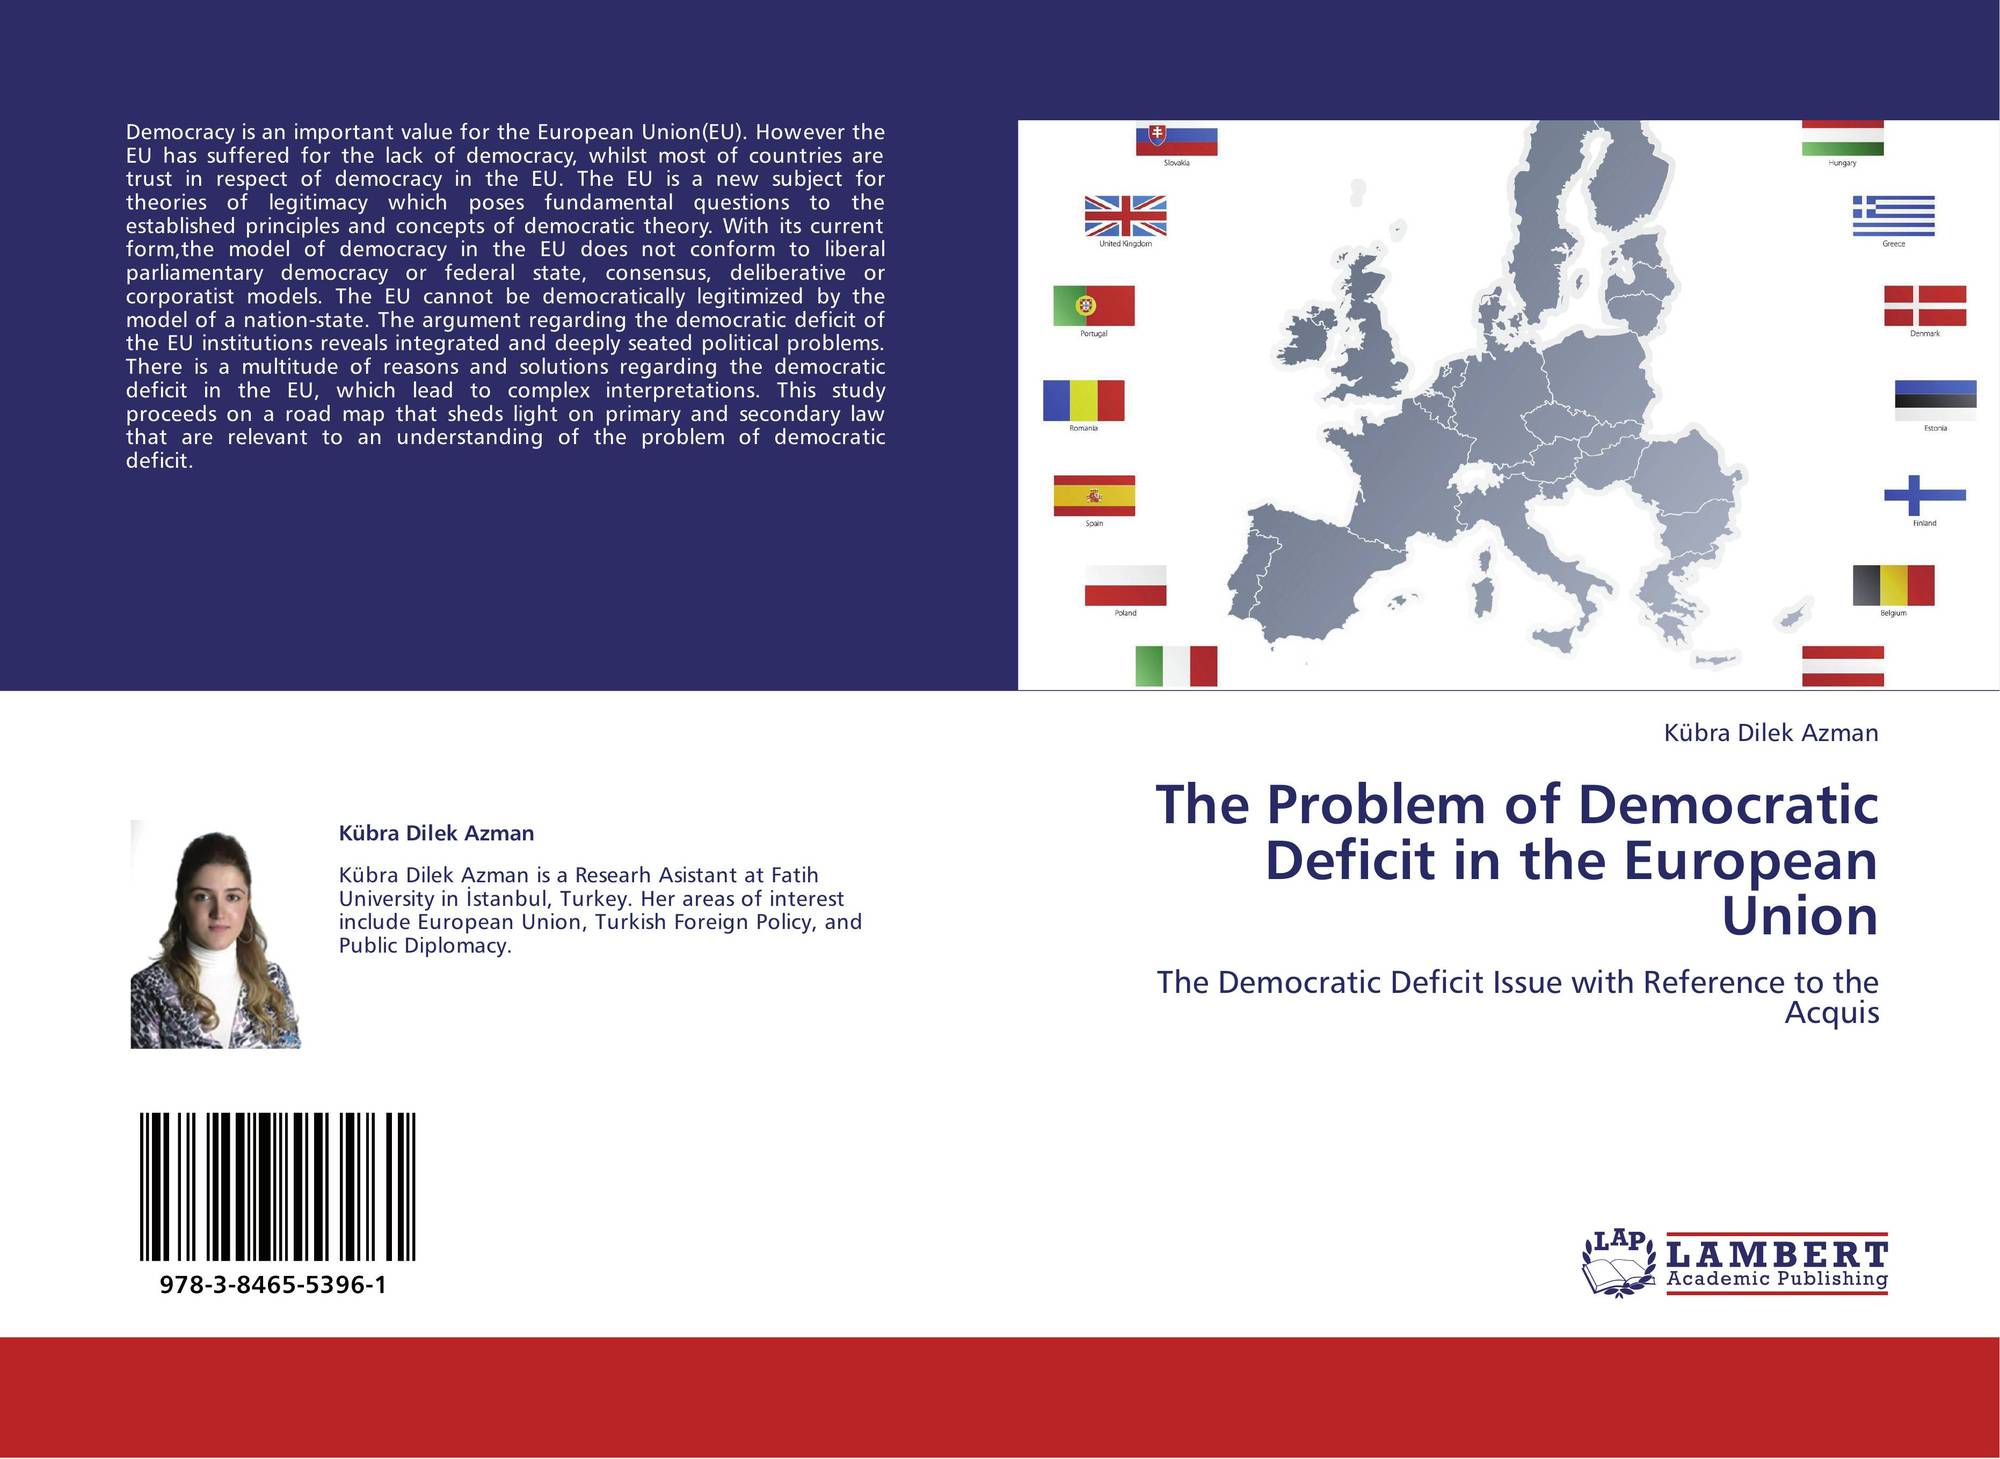 democratic deficit in the european union The european union has regularly been accused of suffering from a democratic  deficit if liberty and equality, as is thought by some, are chiefly to be found.